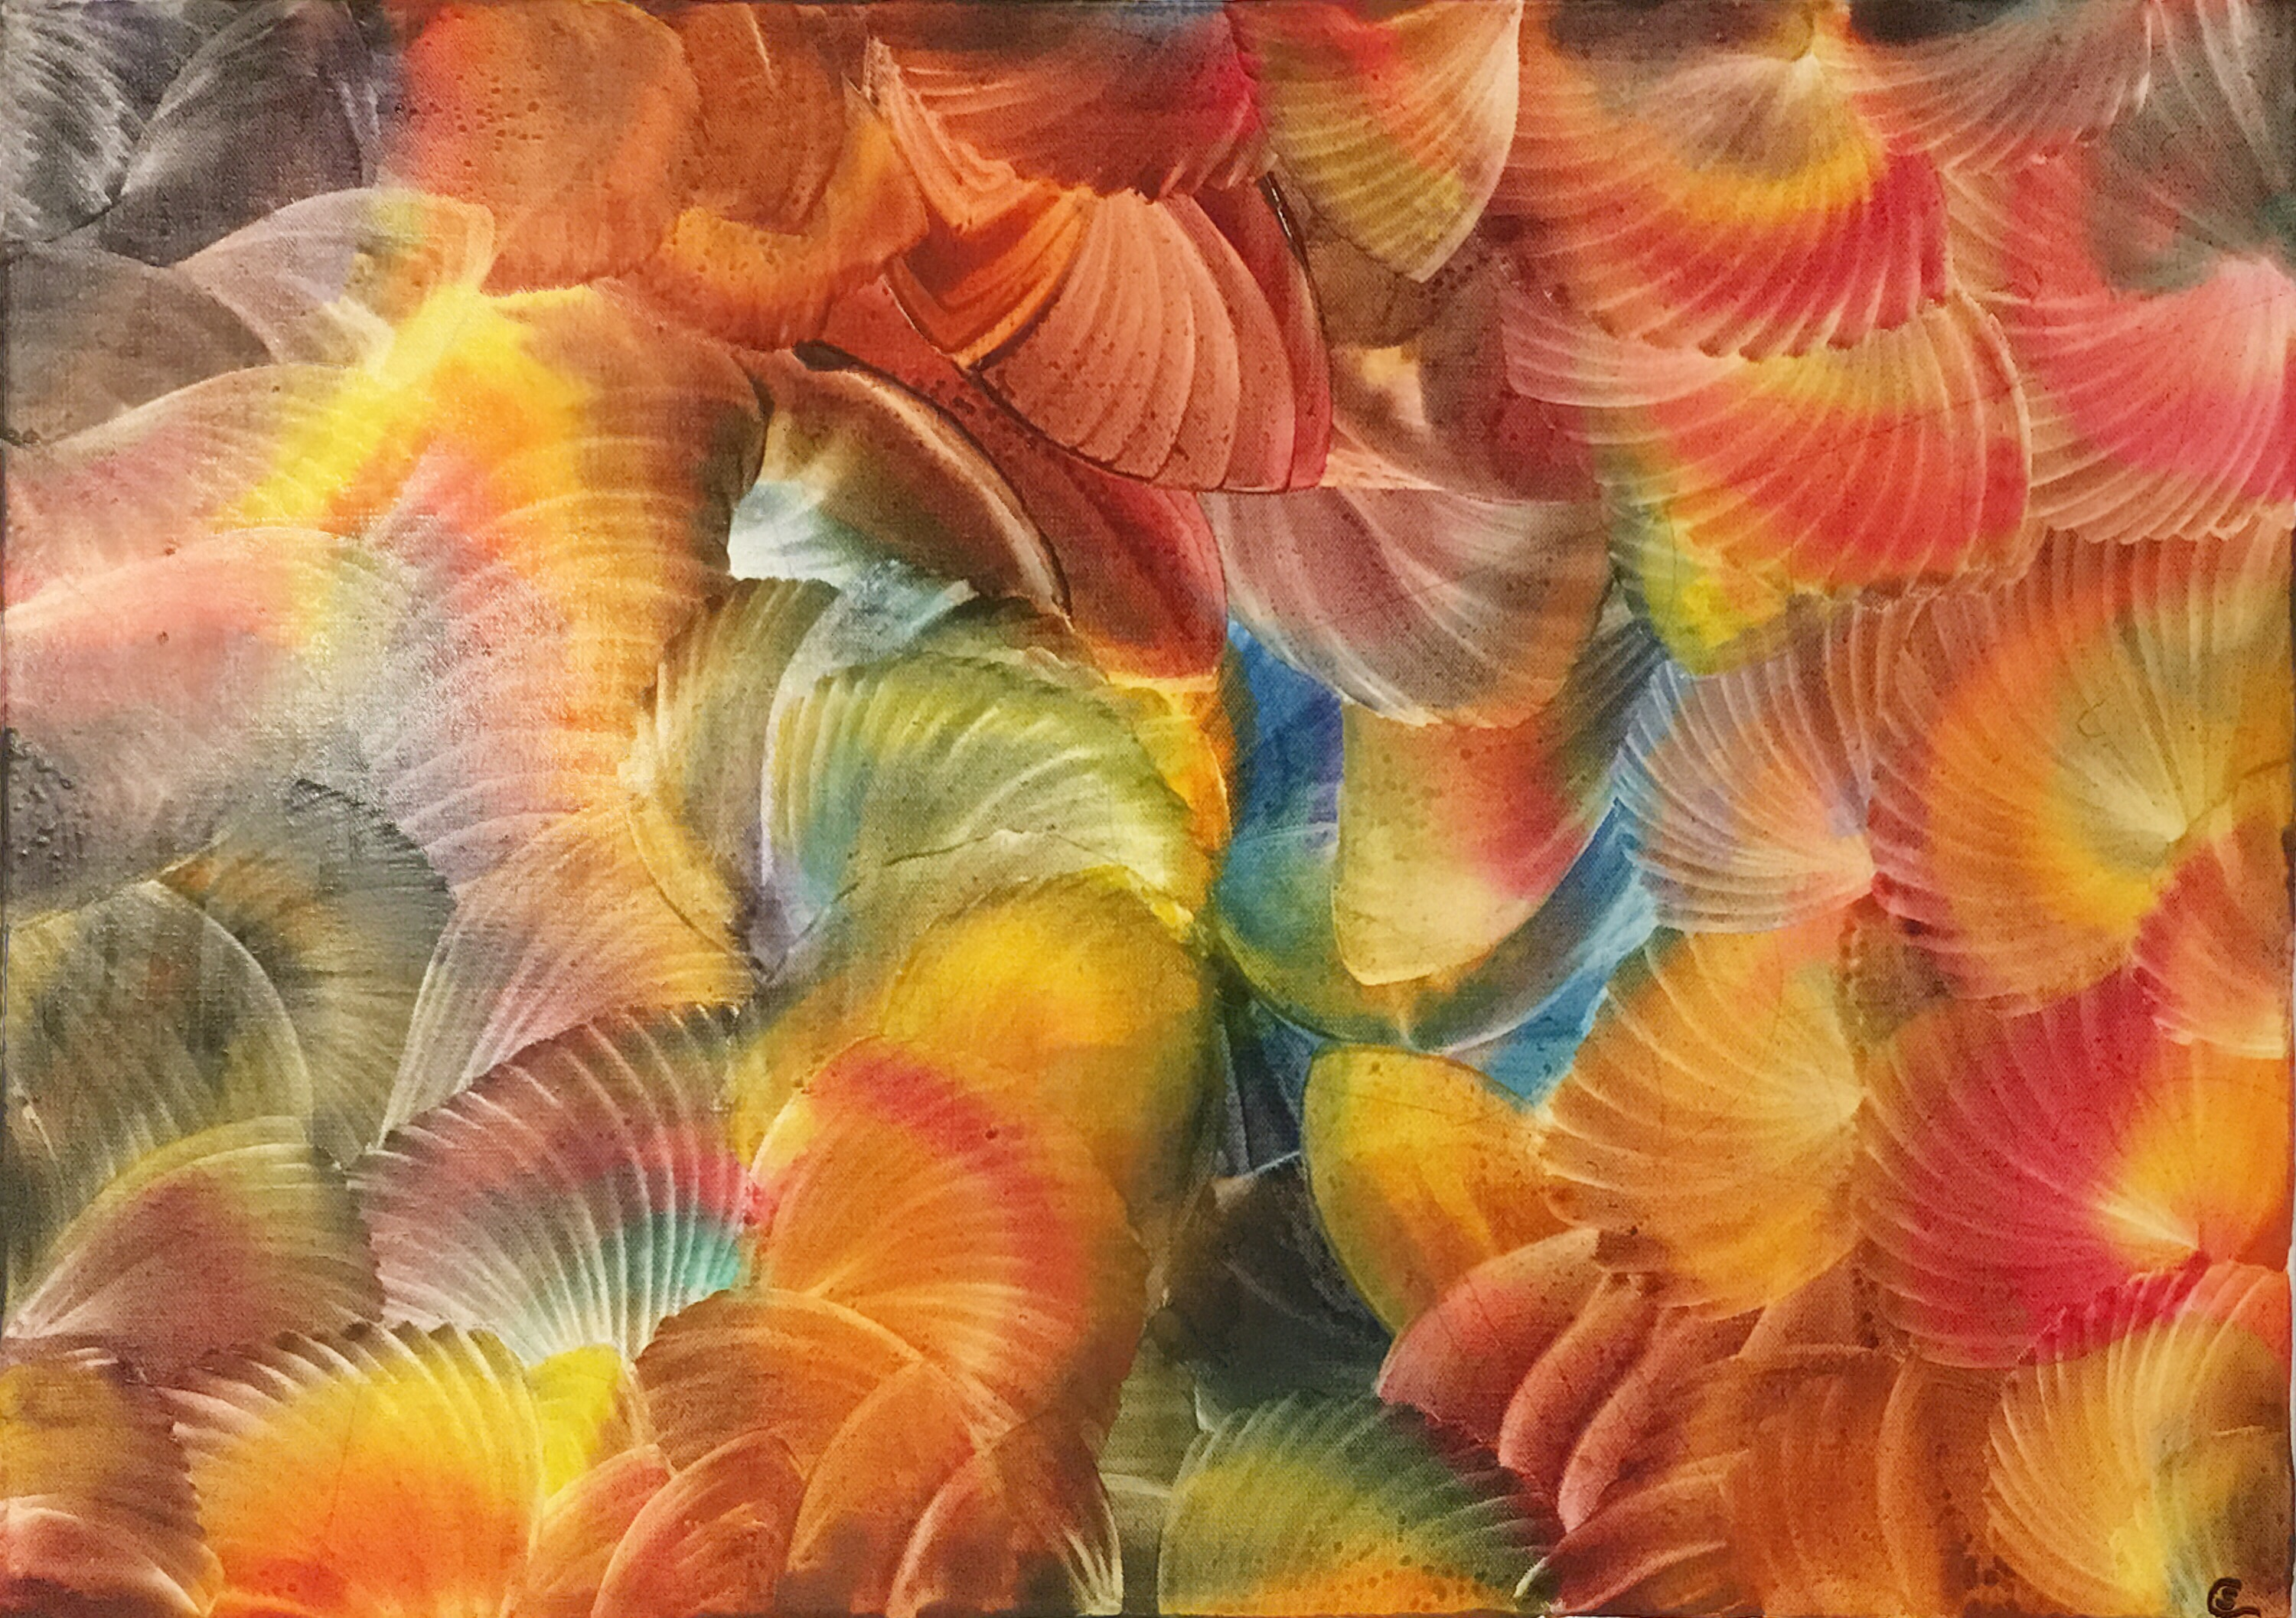 Jacobsmuscheln, scallops, encaustic, 50x70 cm, canvas